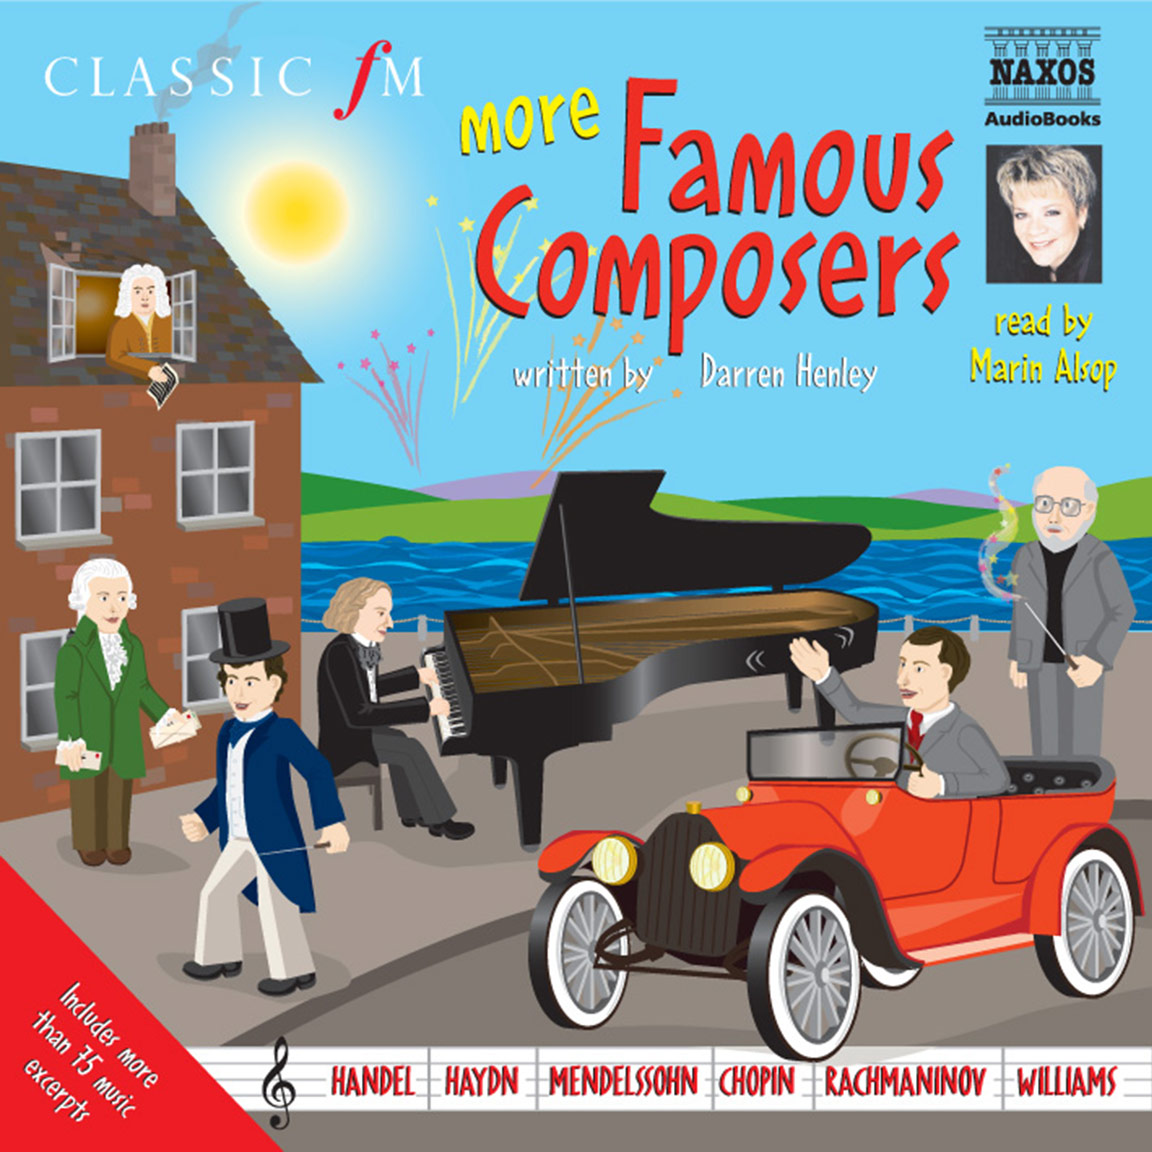 More Famous Composers (unabridged)